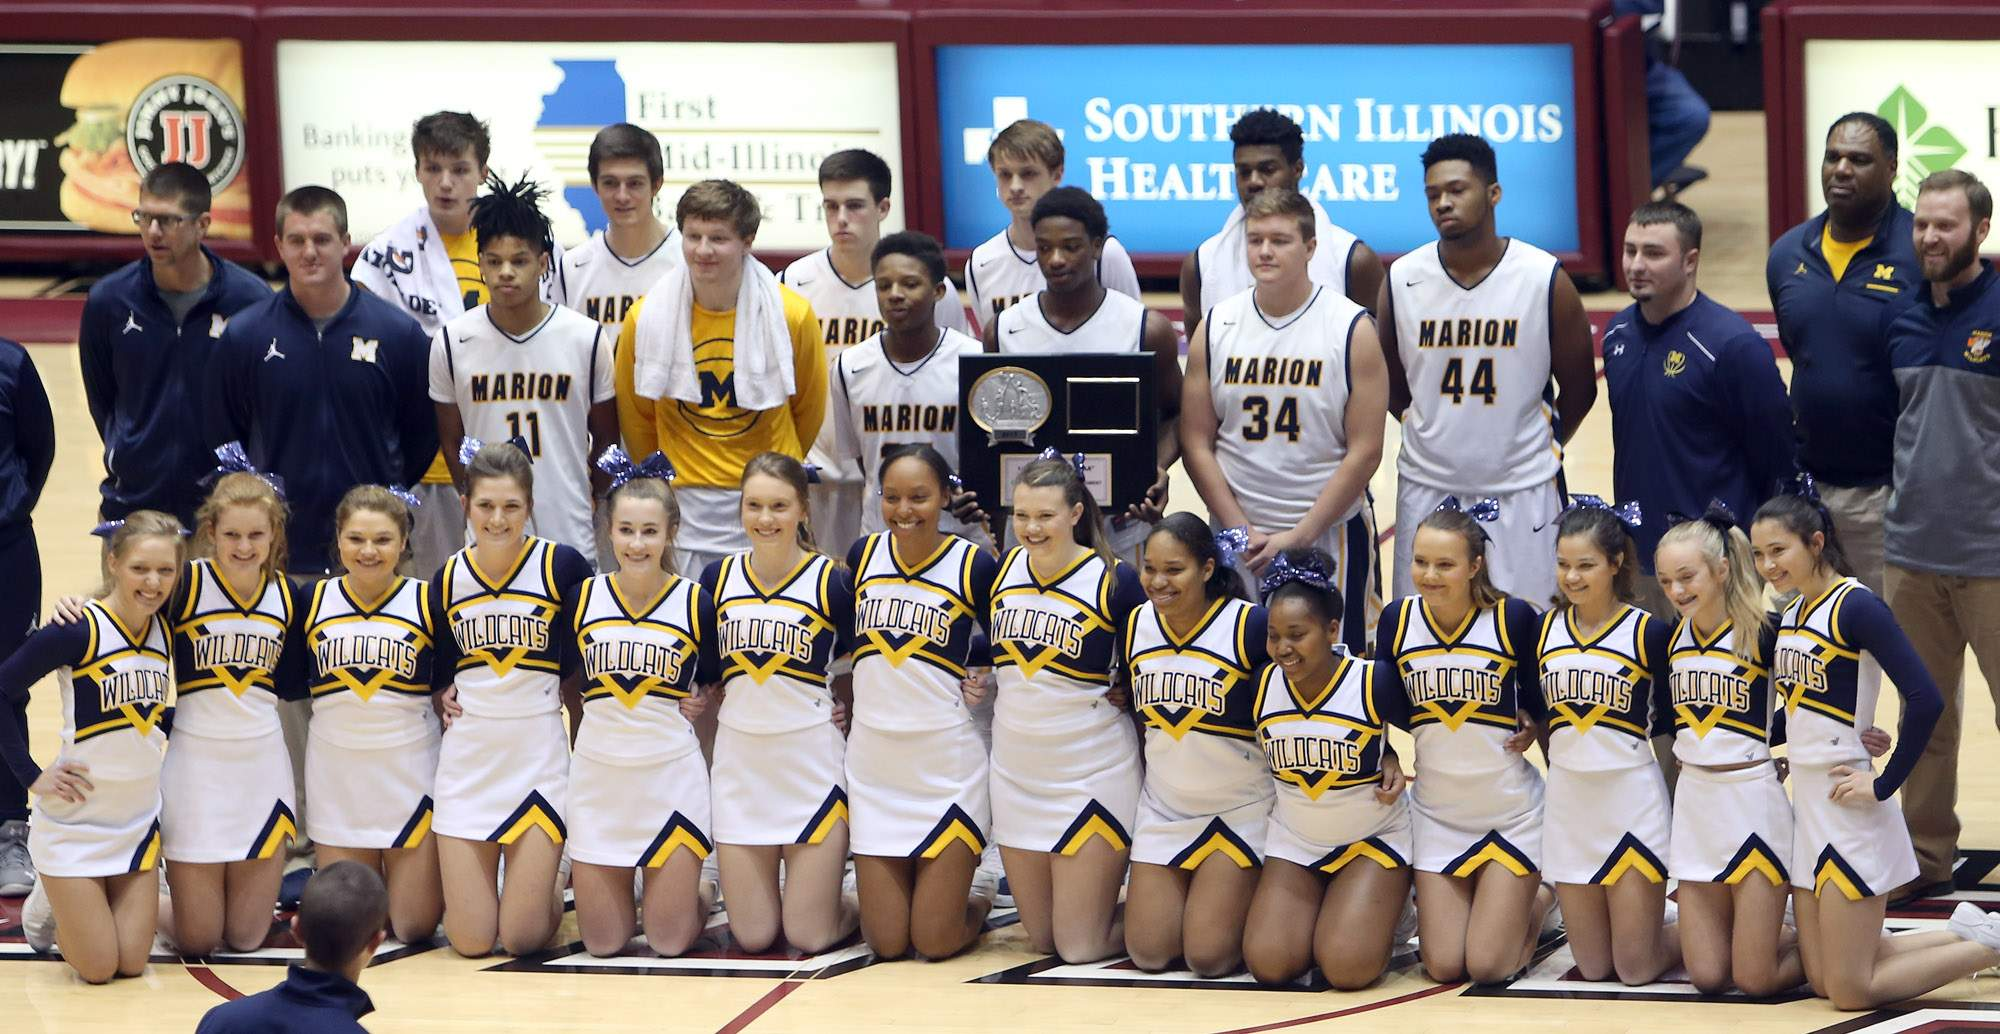 Marion poses with the AA title trophy.